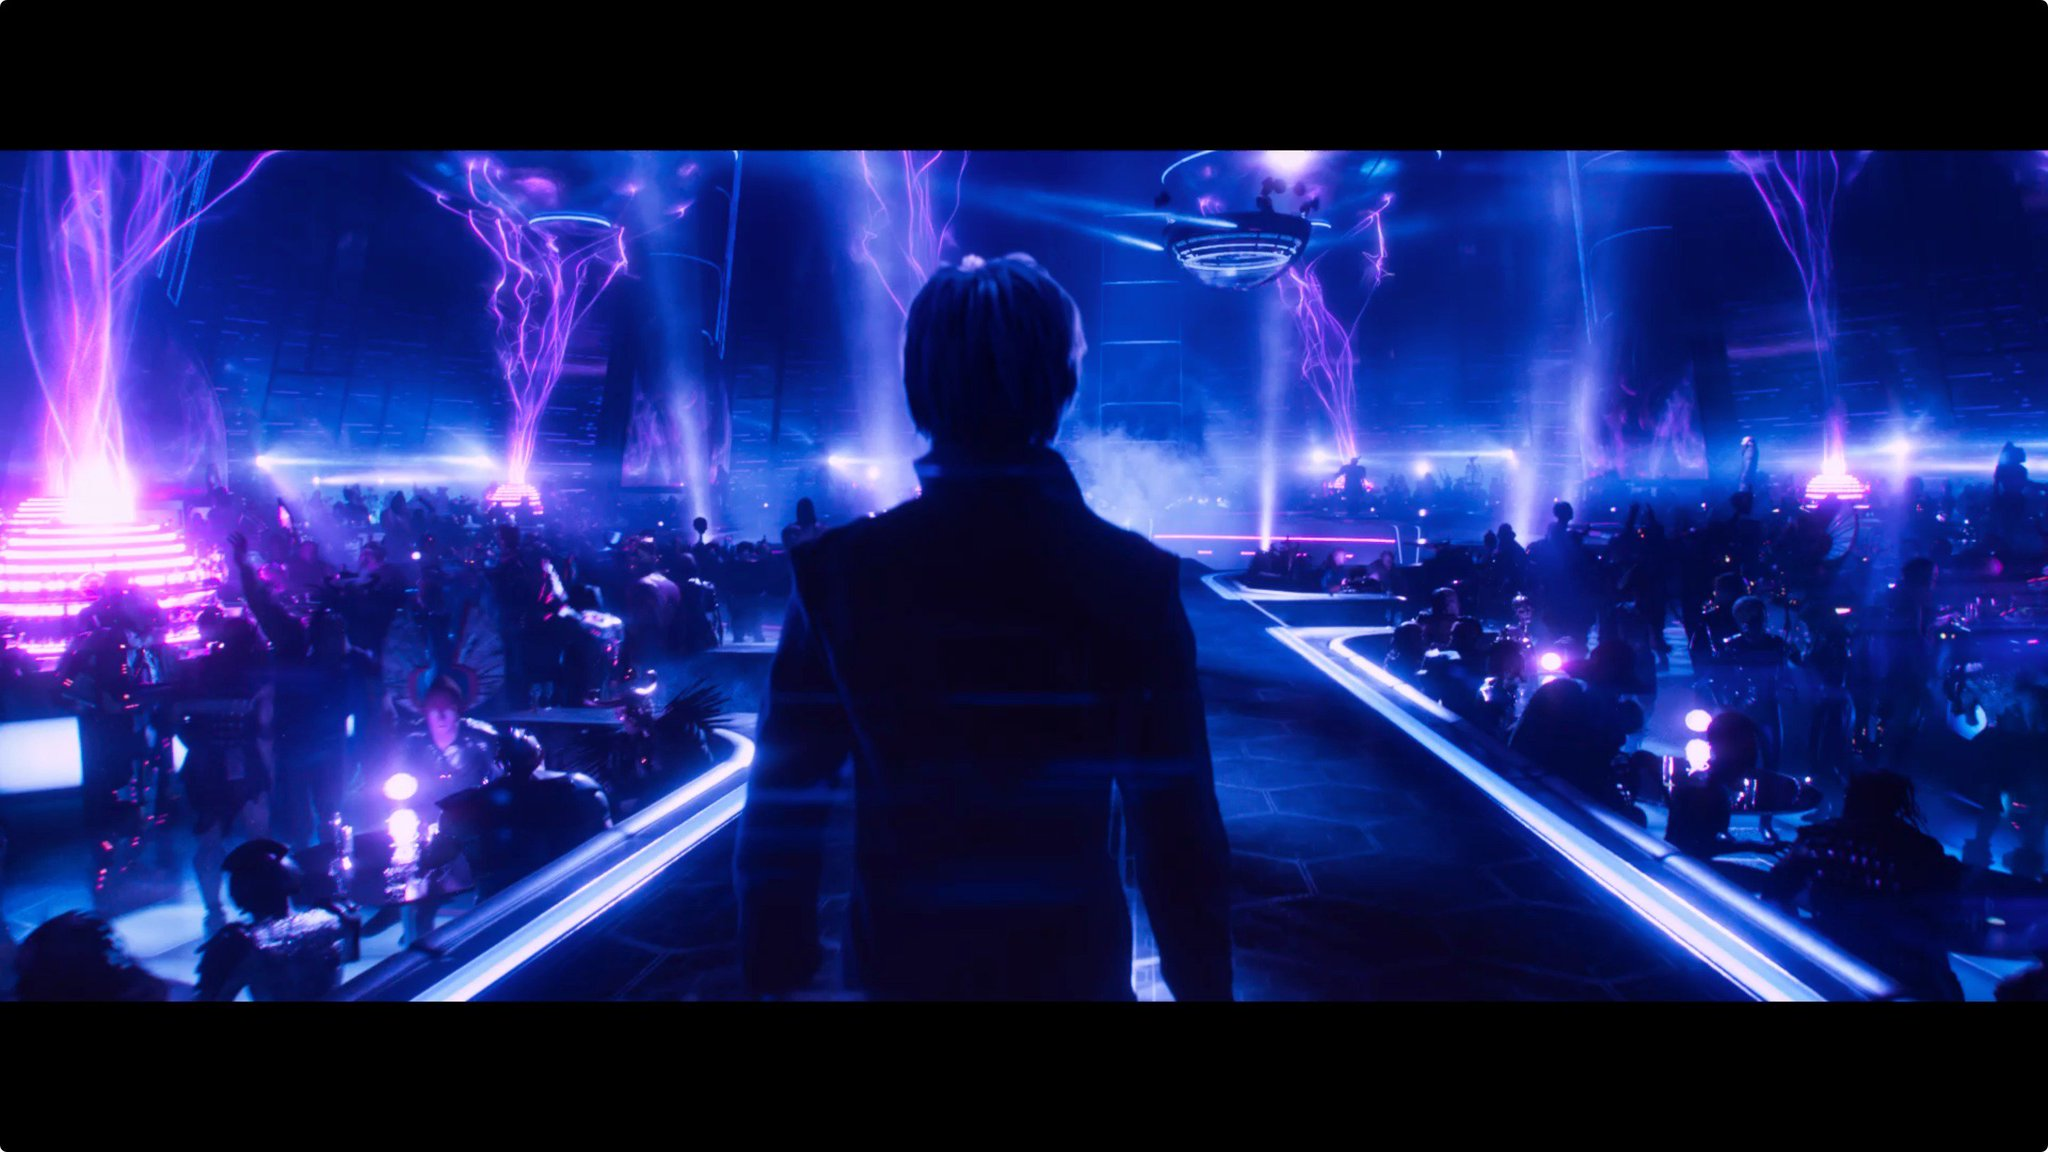 Save the OASIS, save the world. #ReadyPlayerOne https://t.co/eoDojPUwBn